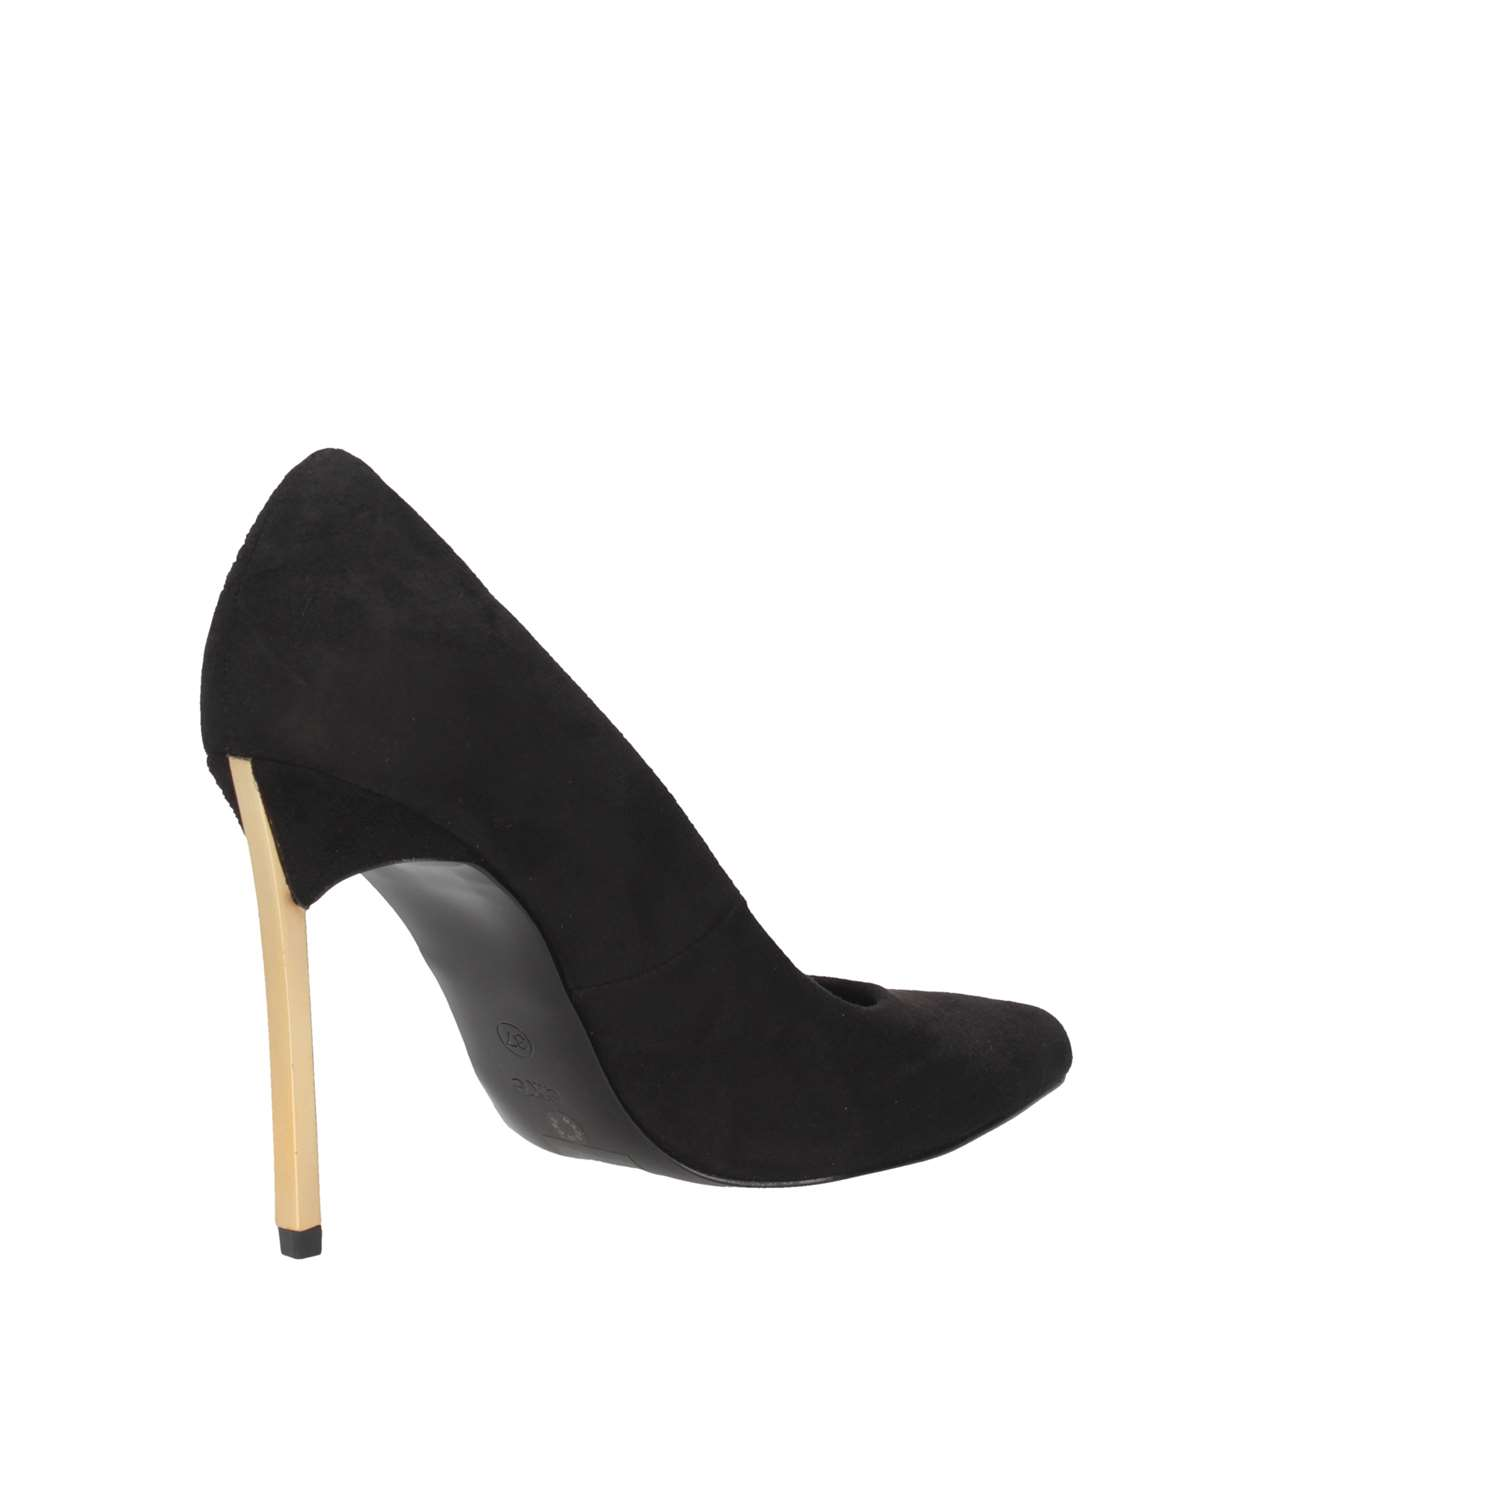 Exe' BIONDA-200 BLACK Black Shoes Woman